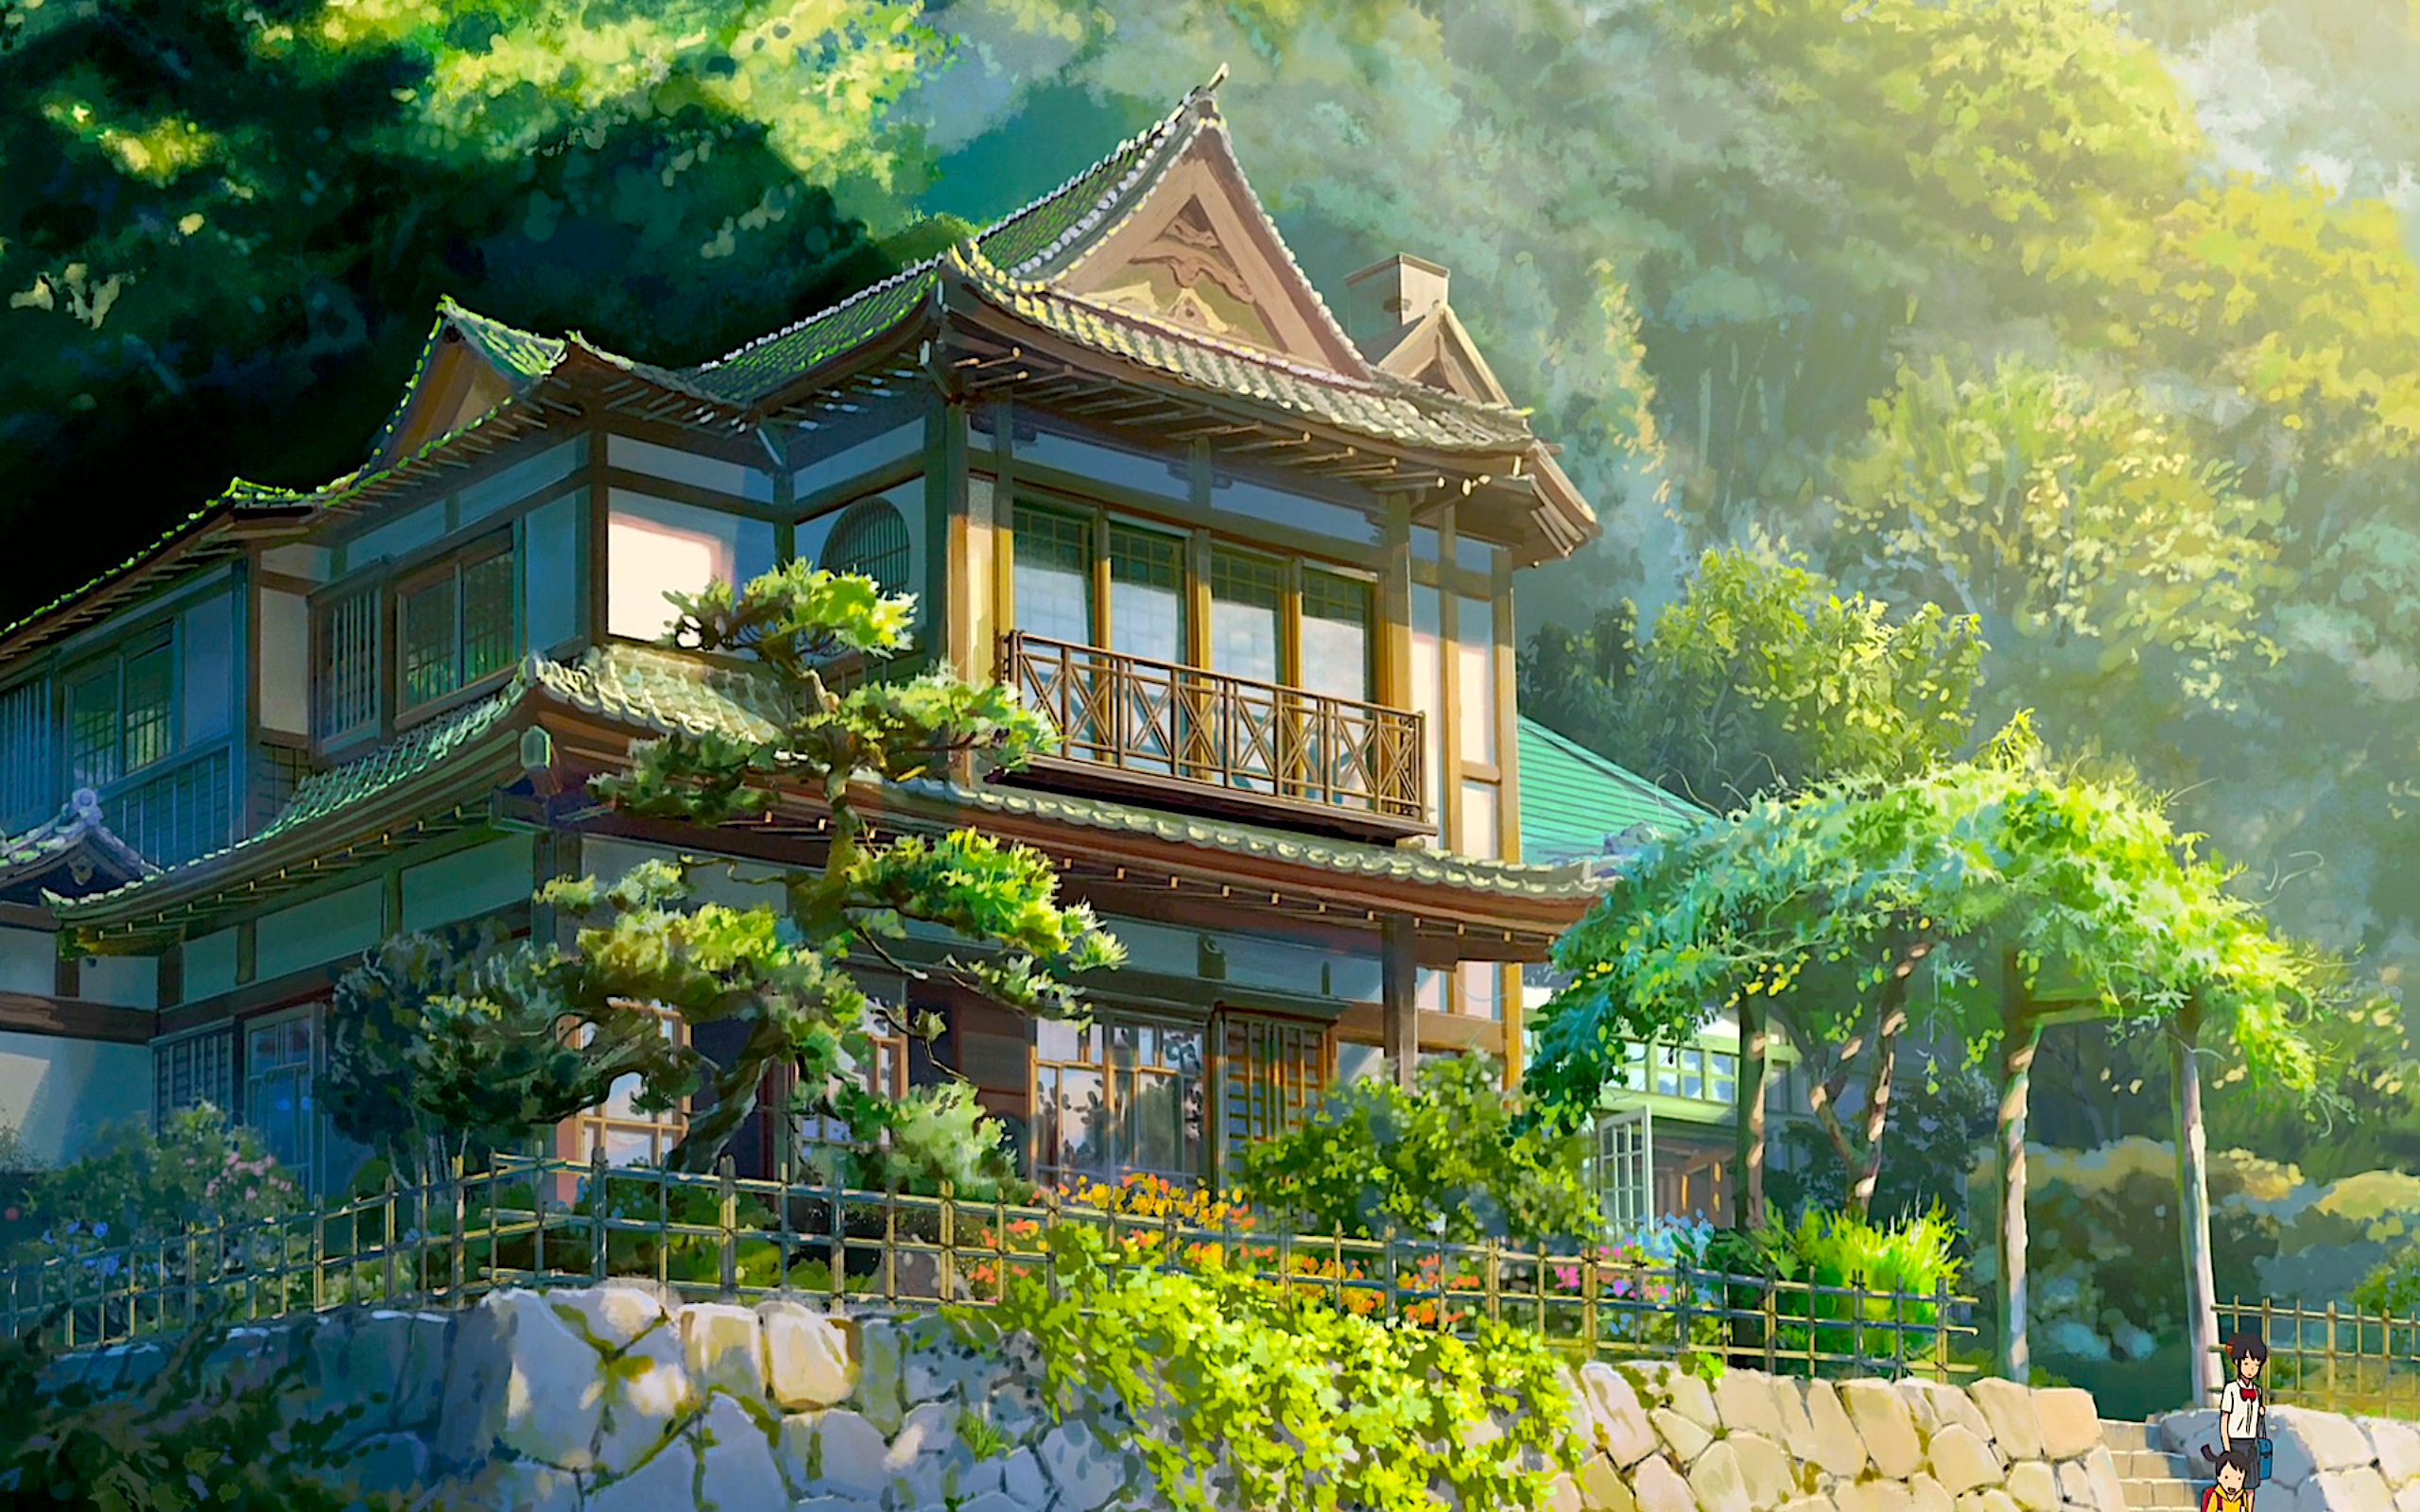 Miyamizu residence full hd wallpaper and background image for Wallpaper for your home